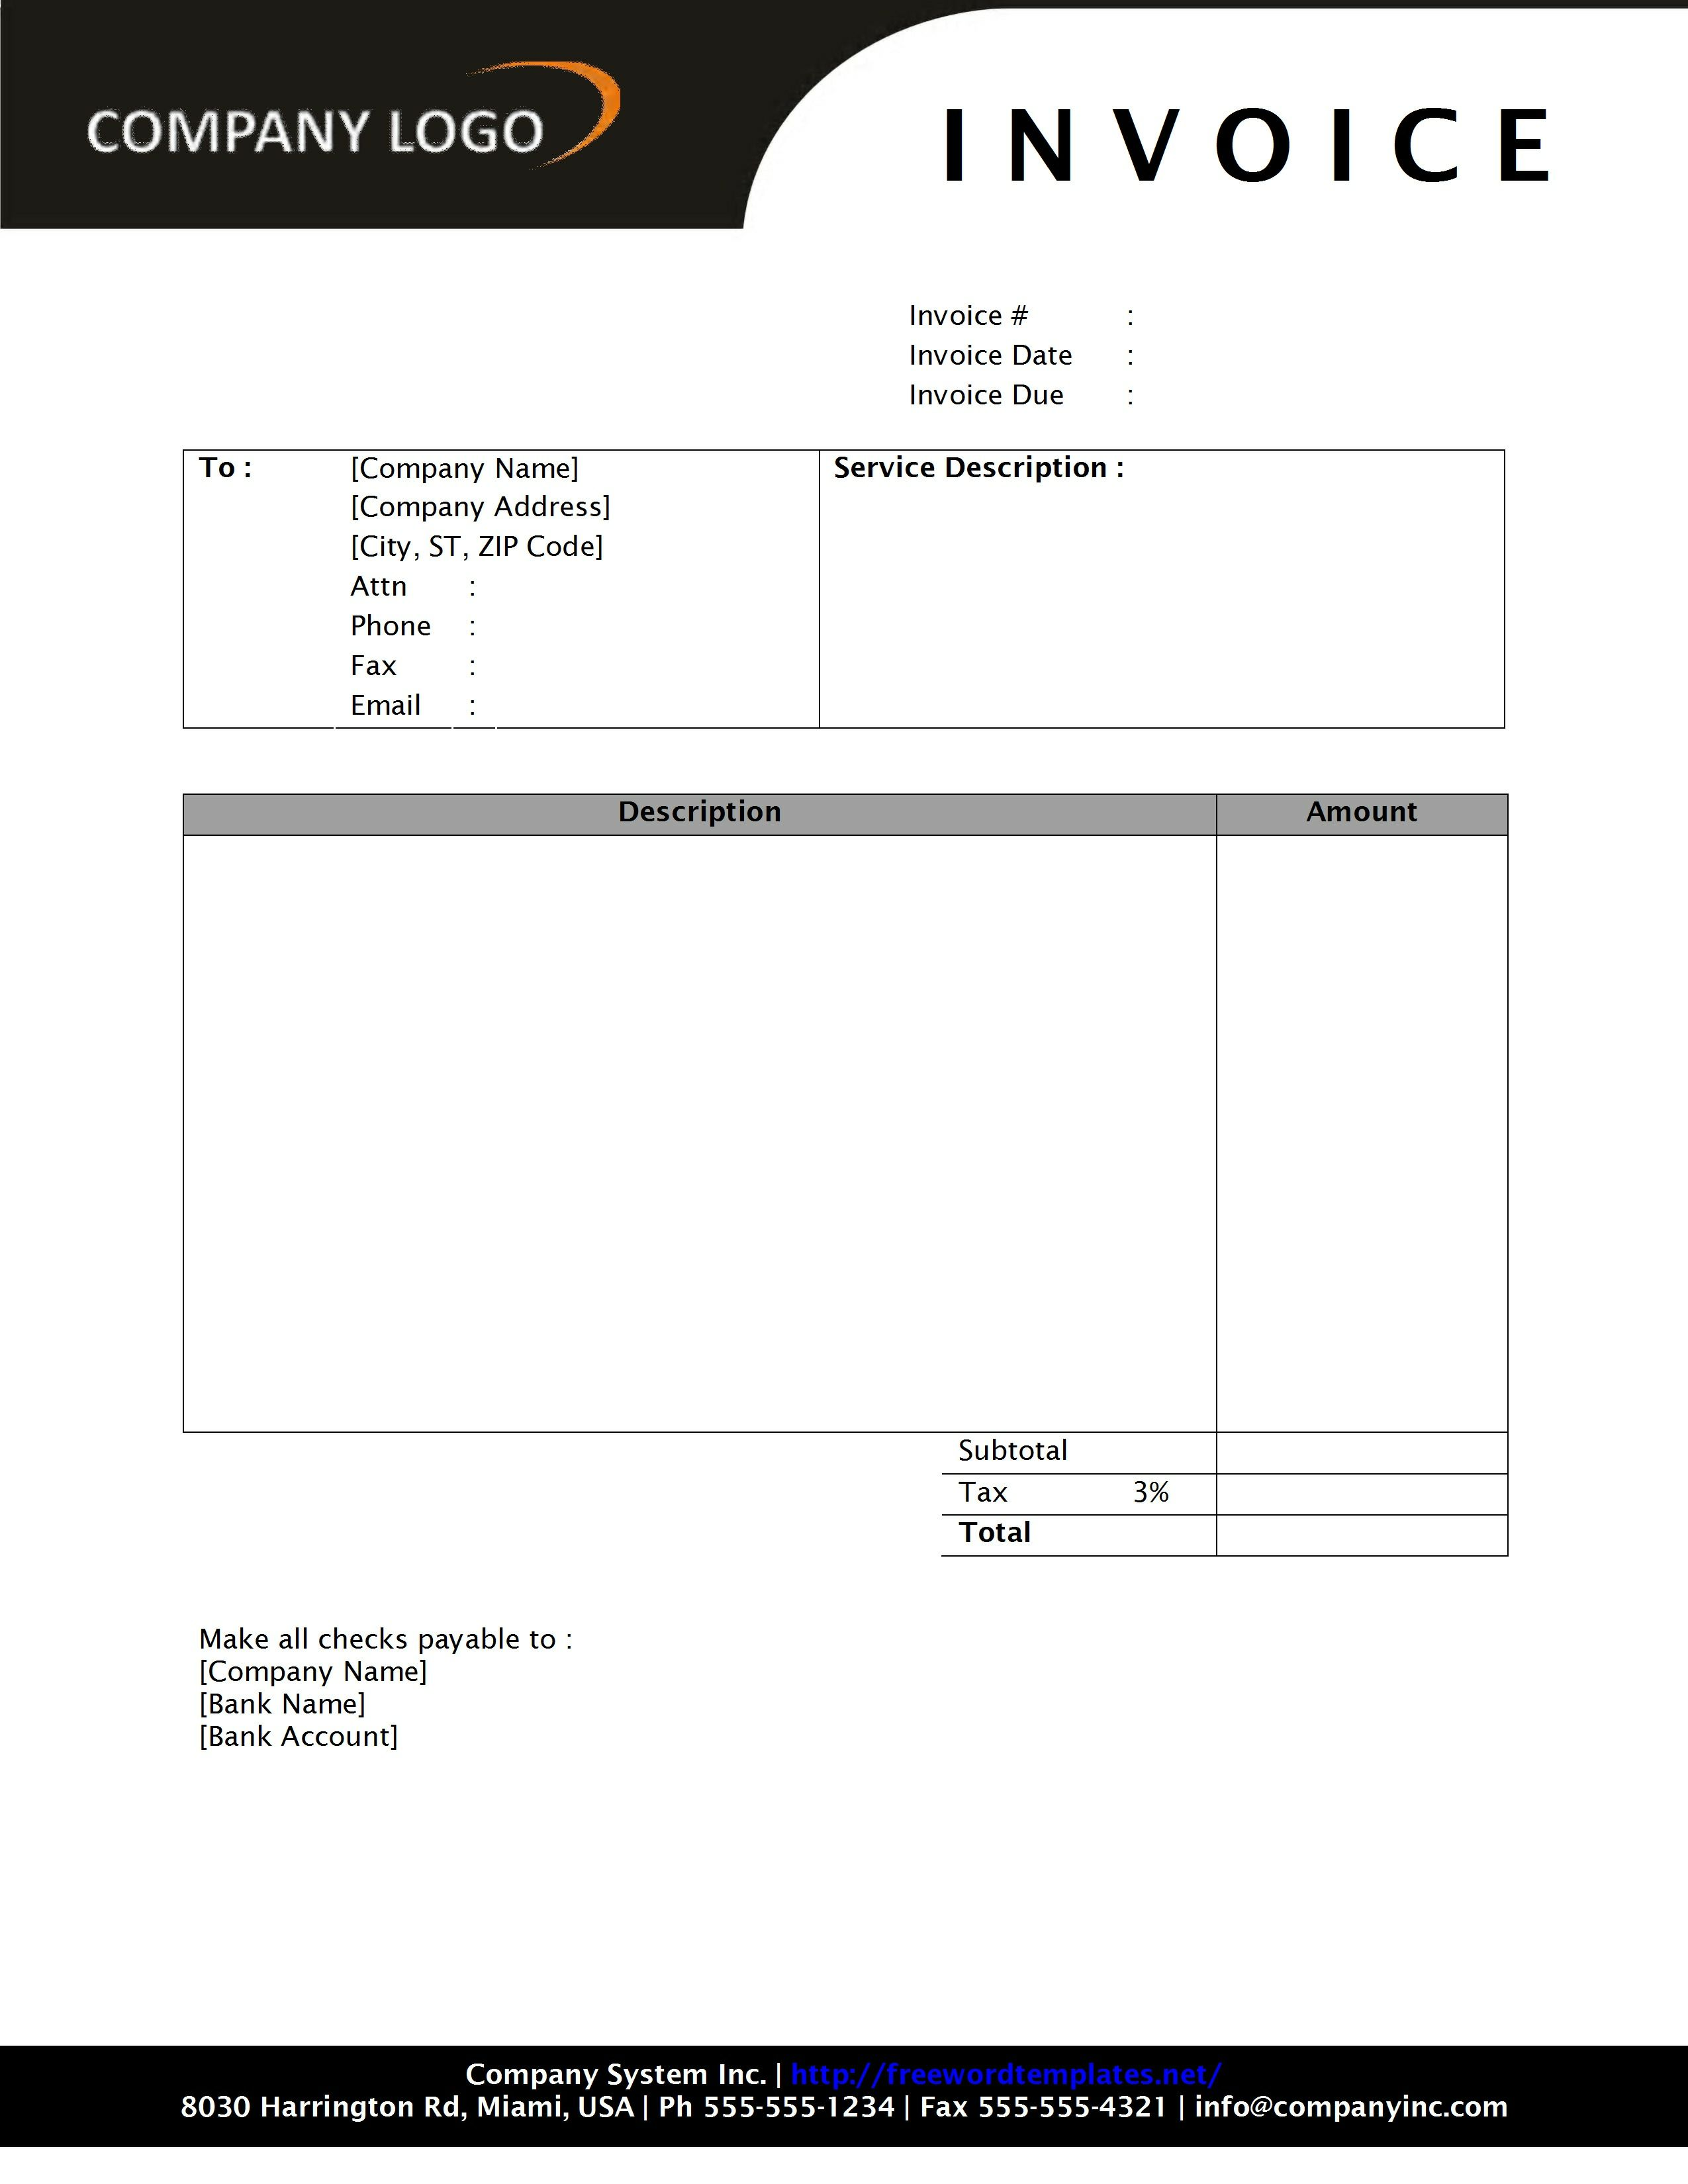 microsoft word invoice template download invoice template word 2010 invoice example 23652